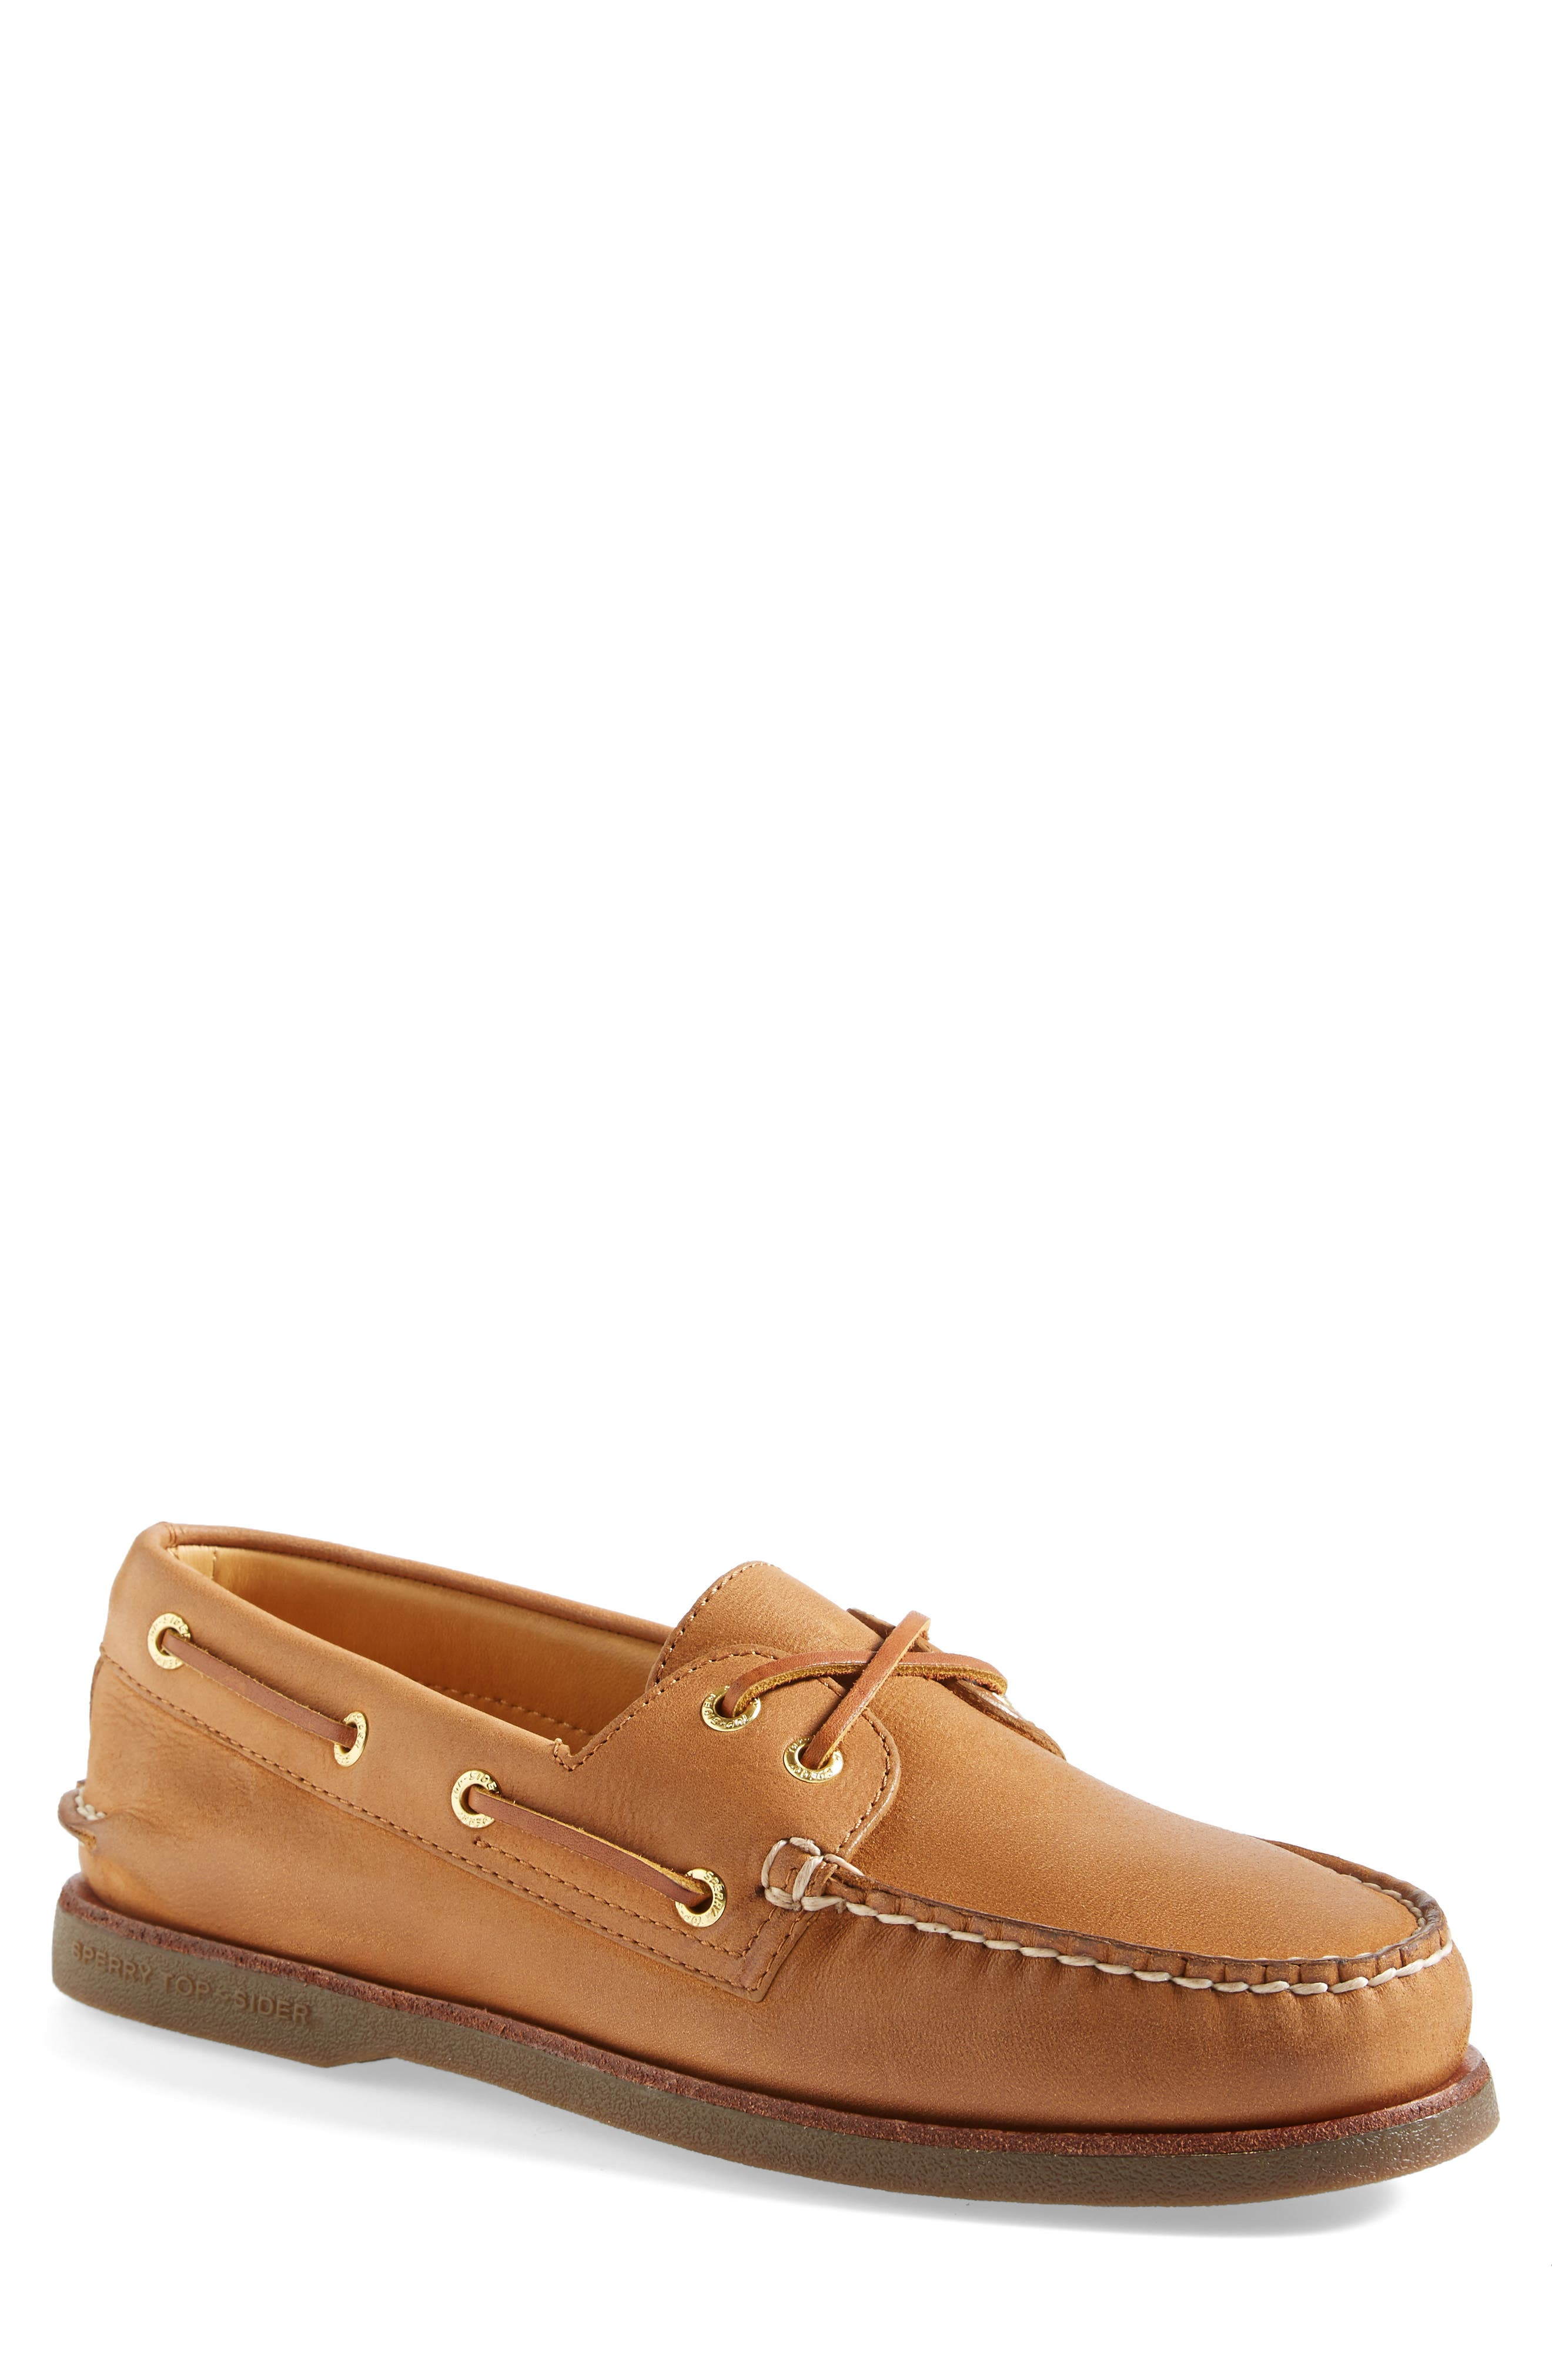 Sperry Gold Cup Shoe Cover//Shoe Bag